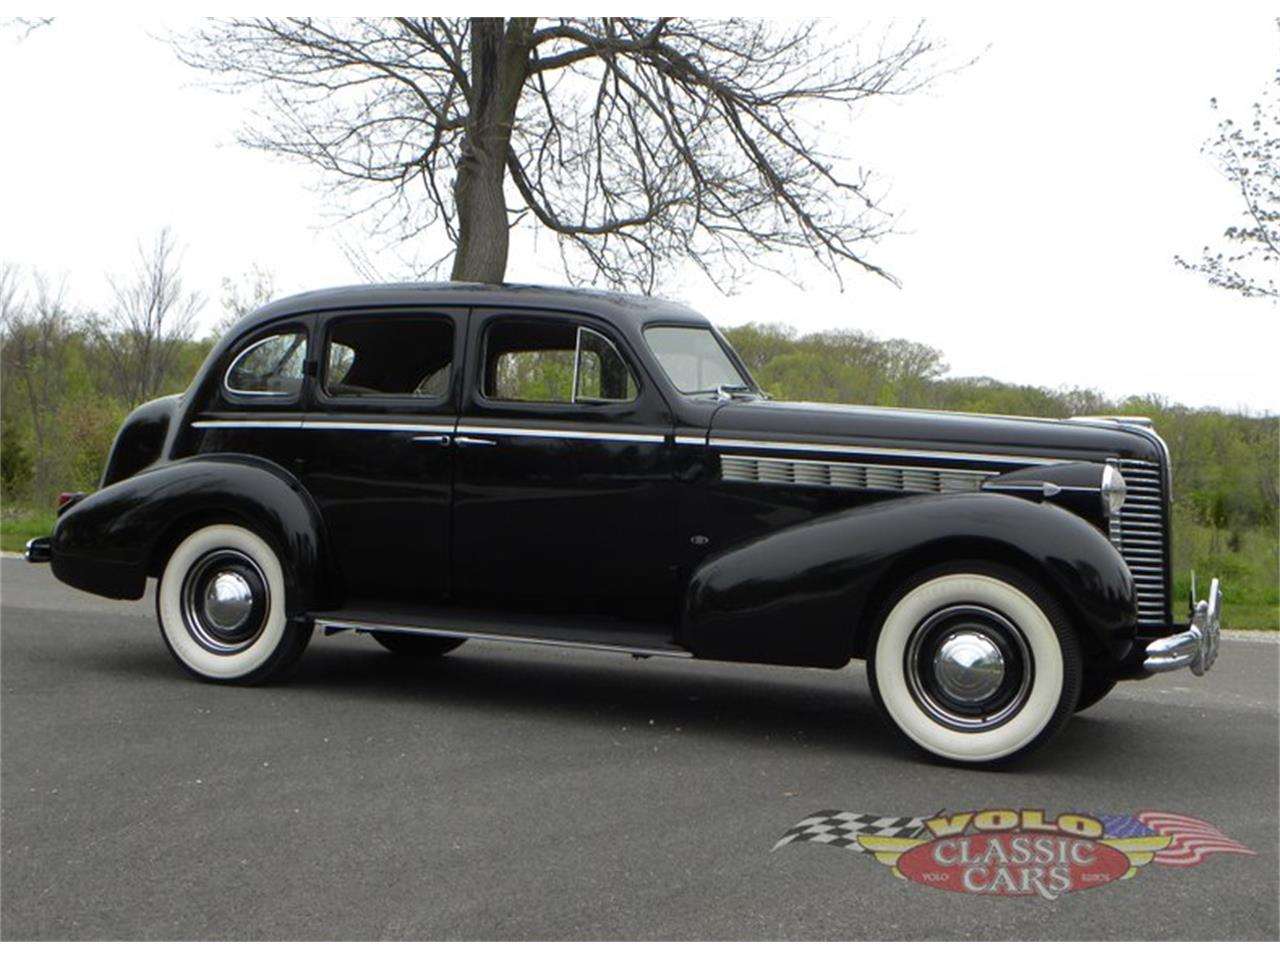 Large Picture of Classic 1938 Buick Special located in Volo Illinois - $26,500.00 - Q46K